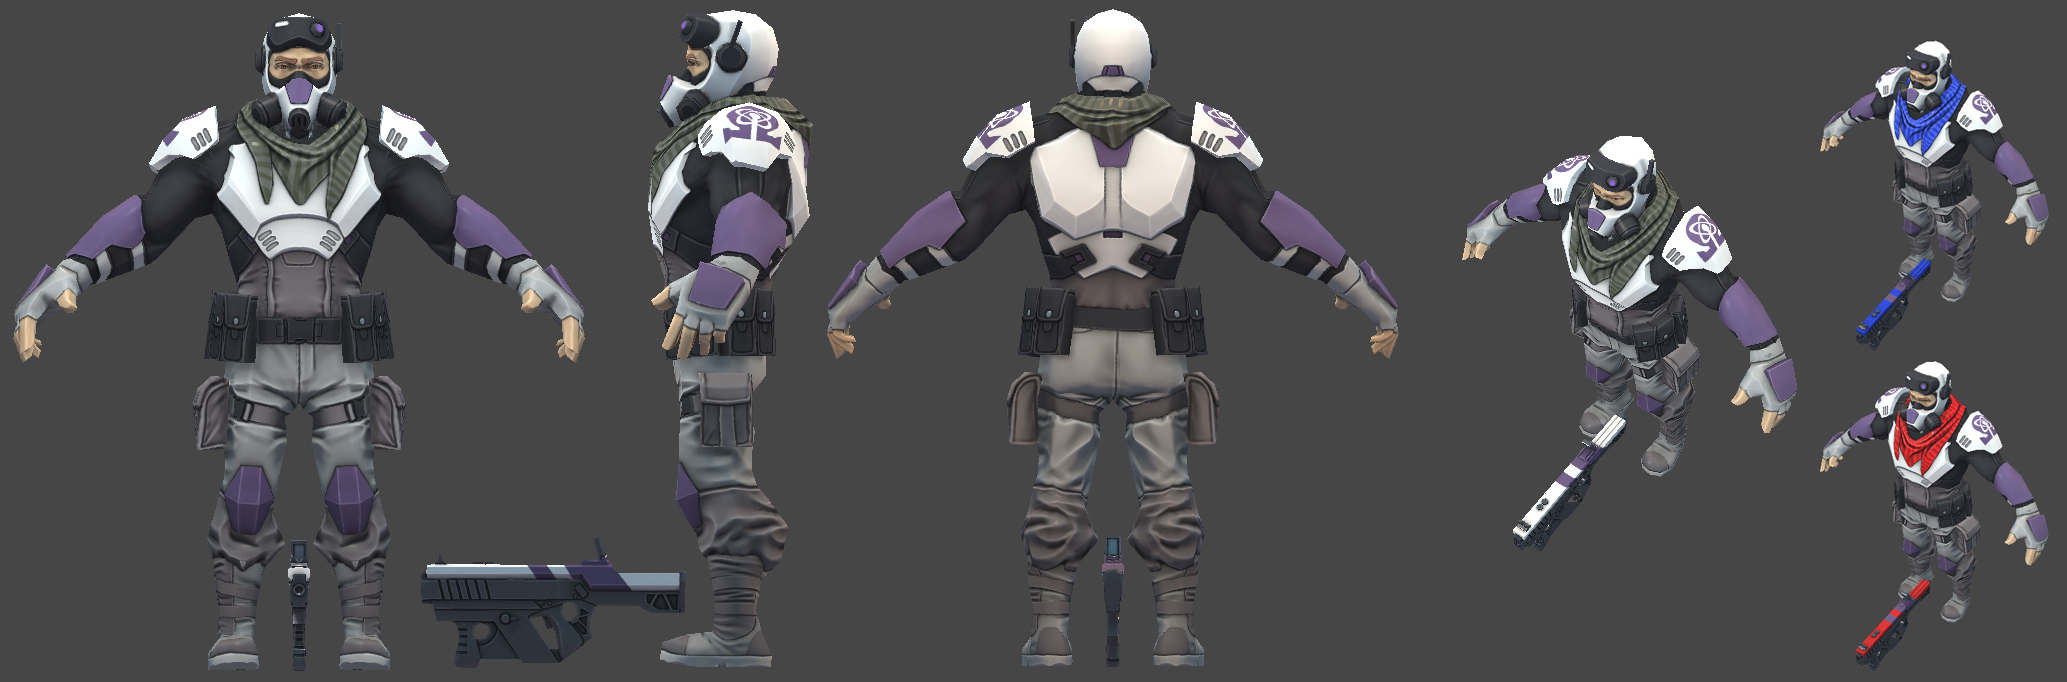 Scorp_lowpoly_Textured_Comped_01.jpg